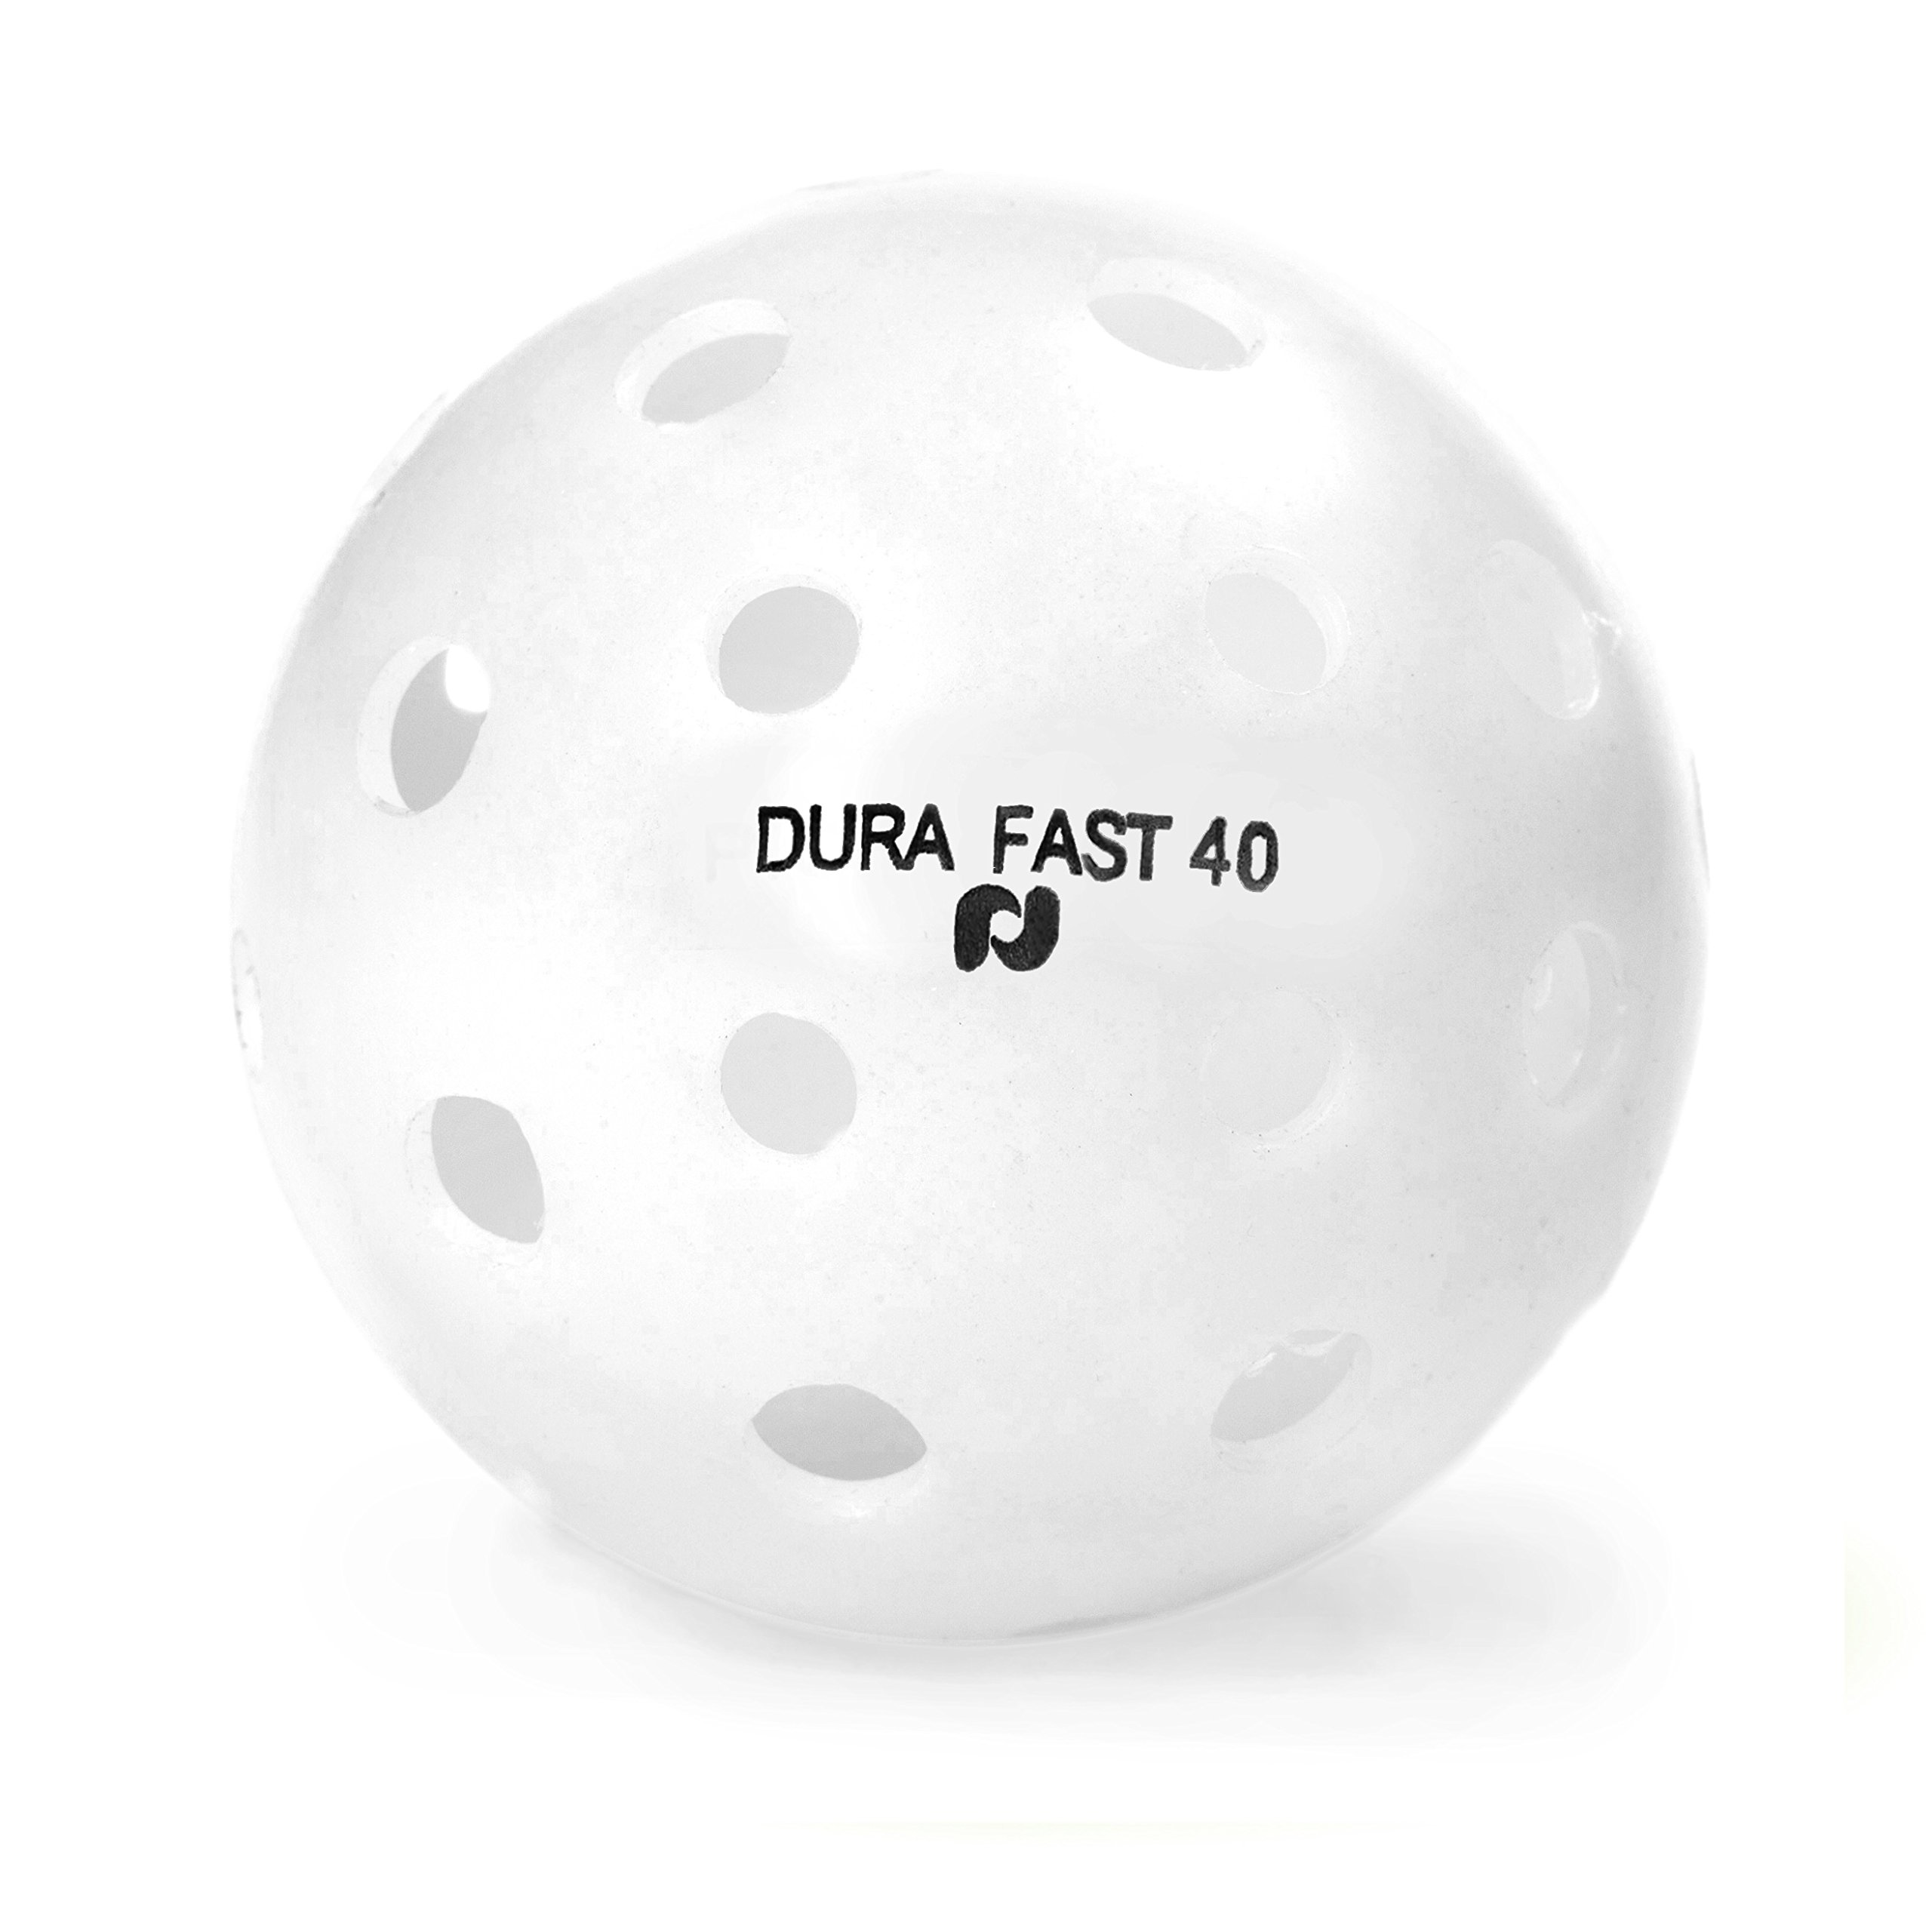 Dura Fast 40 Pickleballs | Outdoor pickleball balls | White | Pack of 6 | USAPA Approved and Sanctioned for Tournament Play, Professional Perfomance by Pickle-Ball